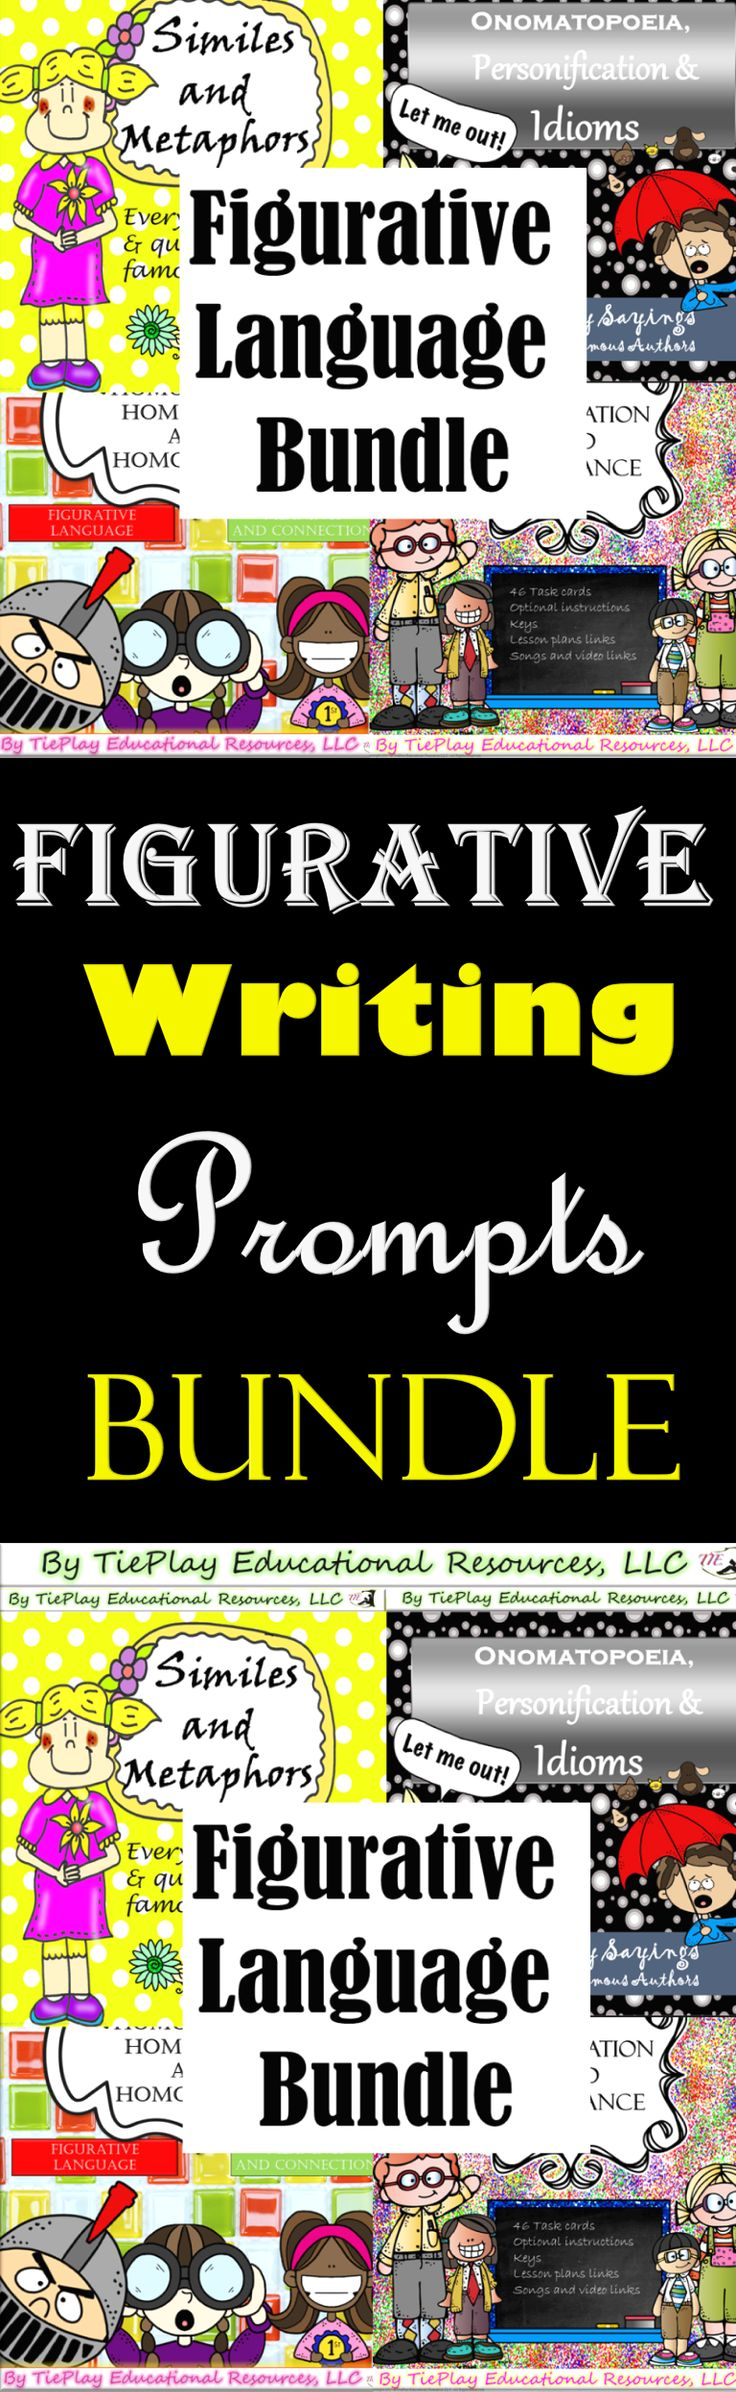 Price $15.00 Get big $$$ savings on an 88 paged figurative language bundle. This bundle includes: 184 task cards,  keys, Instructions for the teachers, lesson plans for over 3 weeks,  and video links.  1. Onomatopoeia, Personification and Idioms   2. Similes and Metaphors   3. Homophones, Homonyms and Homographs   4. Alliteration and Assonance